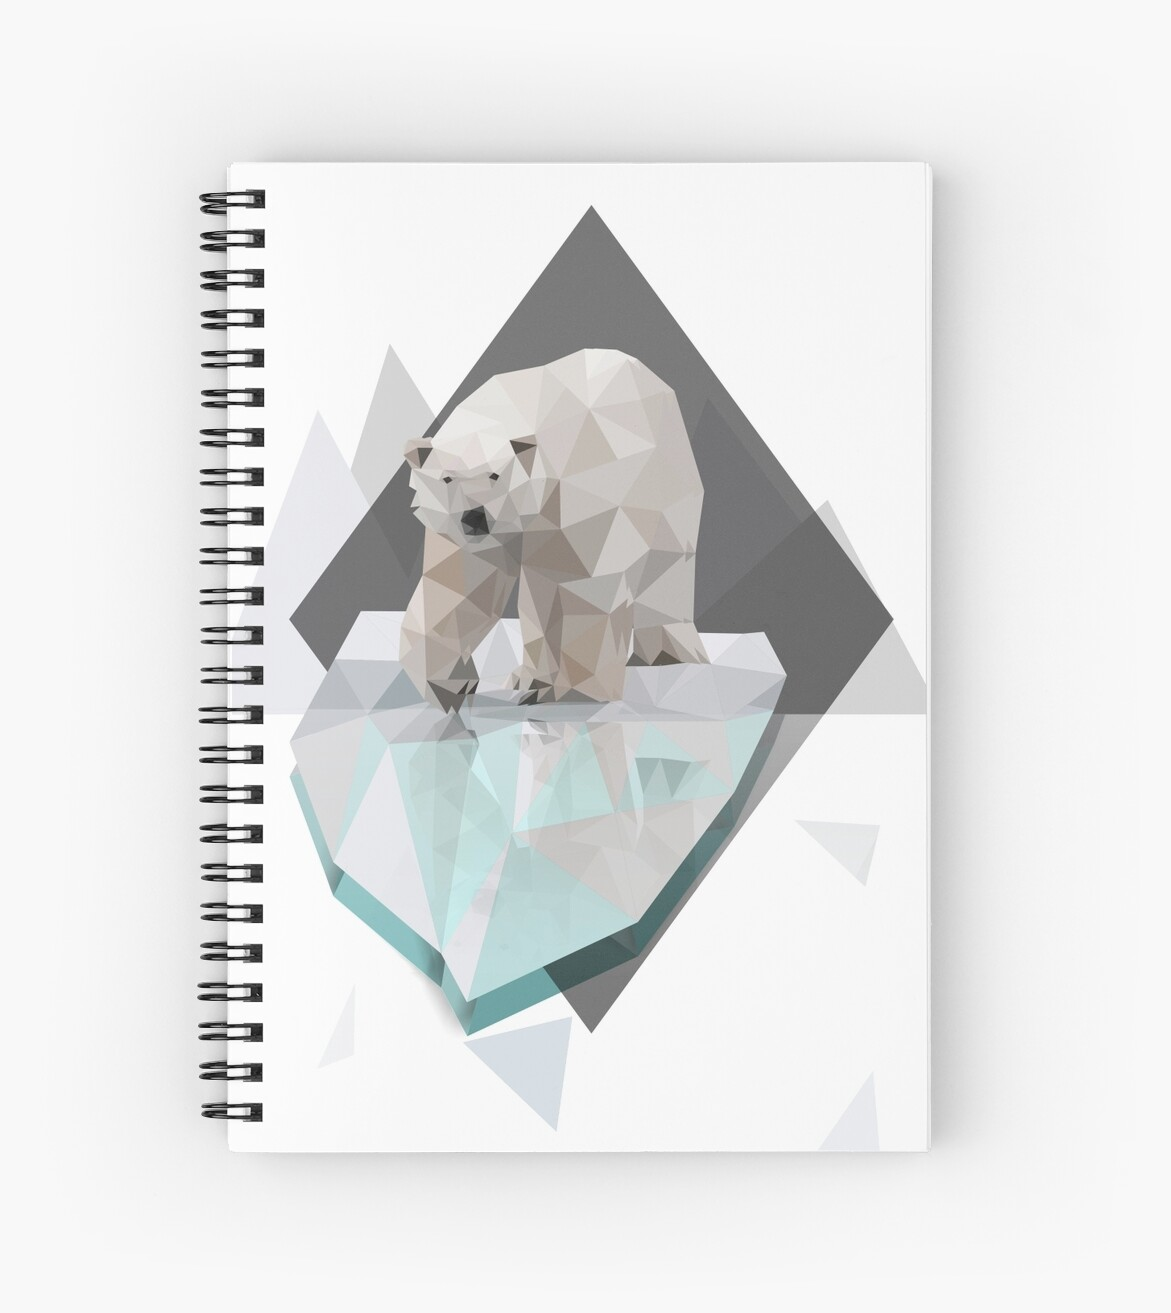 Low Poly Polar Bear on Iceberg Illustration by omniprints